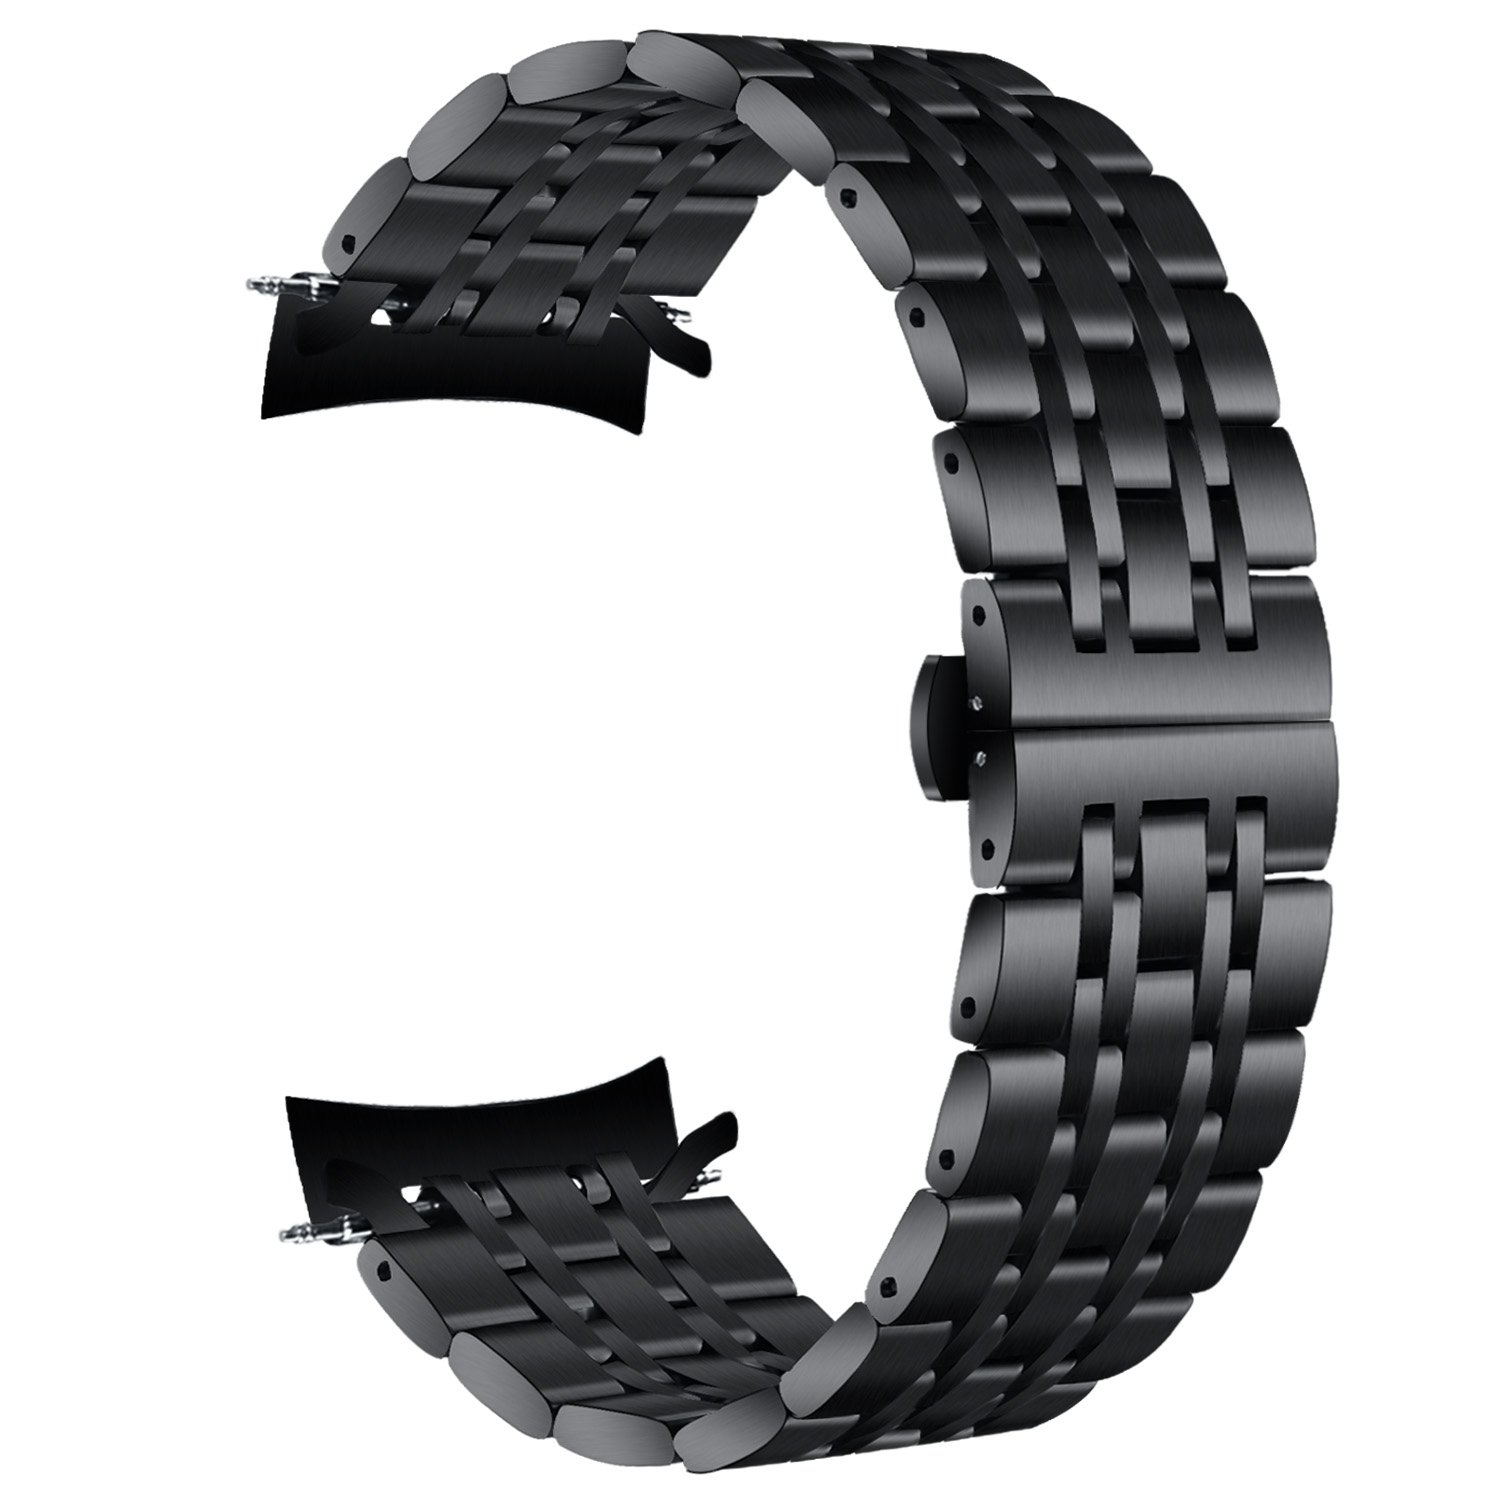 VIGOSS {ZERO GAPS} Gear S3 Frontier/Classic Bands, 22mm Black Solid Stainless Steel Metal Band With Butterfly Buckle 7 Beads Replacement Strap for Samsung Gear S3 Frontier / S3 Classic Smart Watch